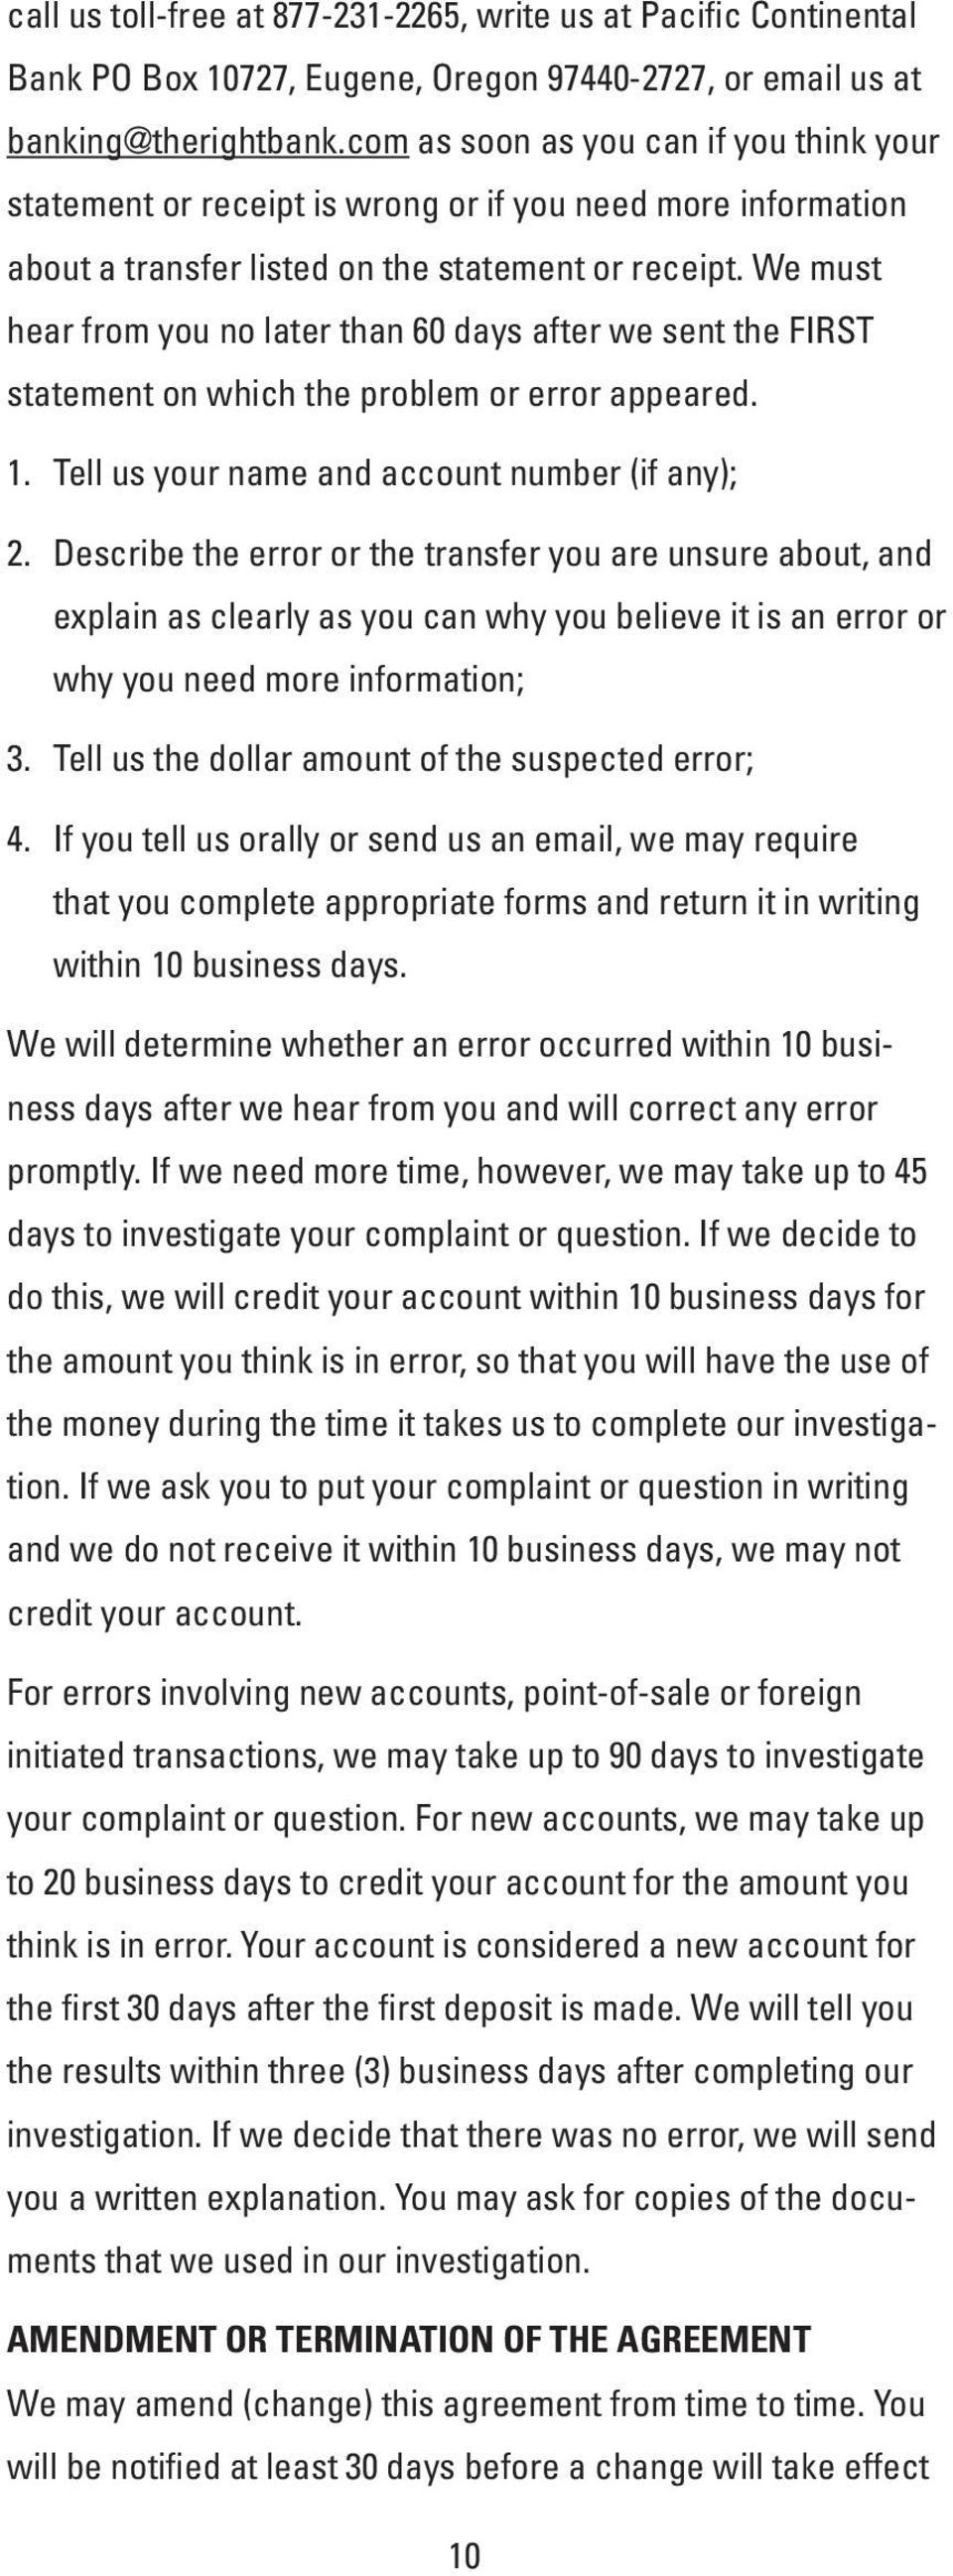 We must hear from you no later than 60 days after we sent the FIRST statement on which the problem or error appeared. 1. Tell us your name and account number (if any); 2.